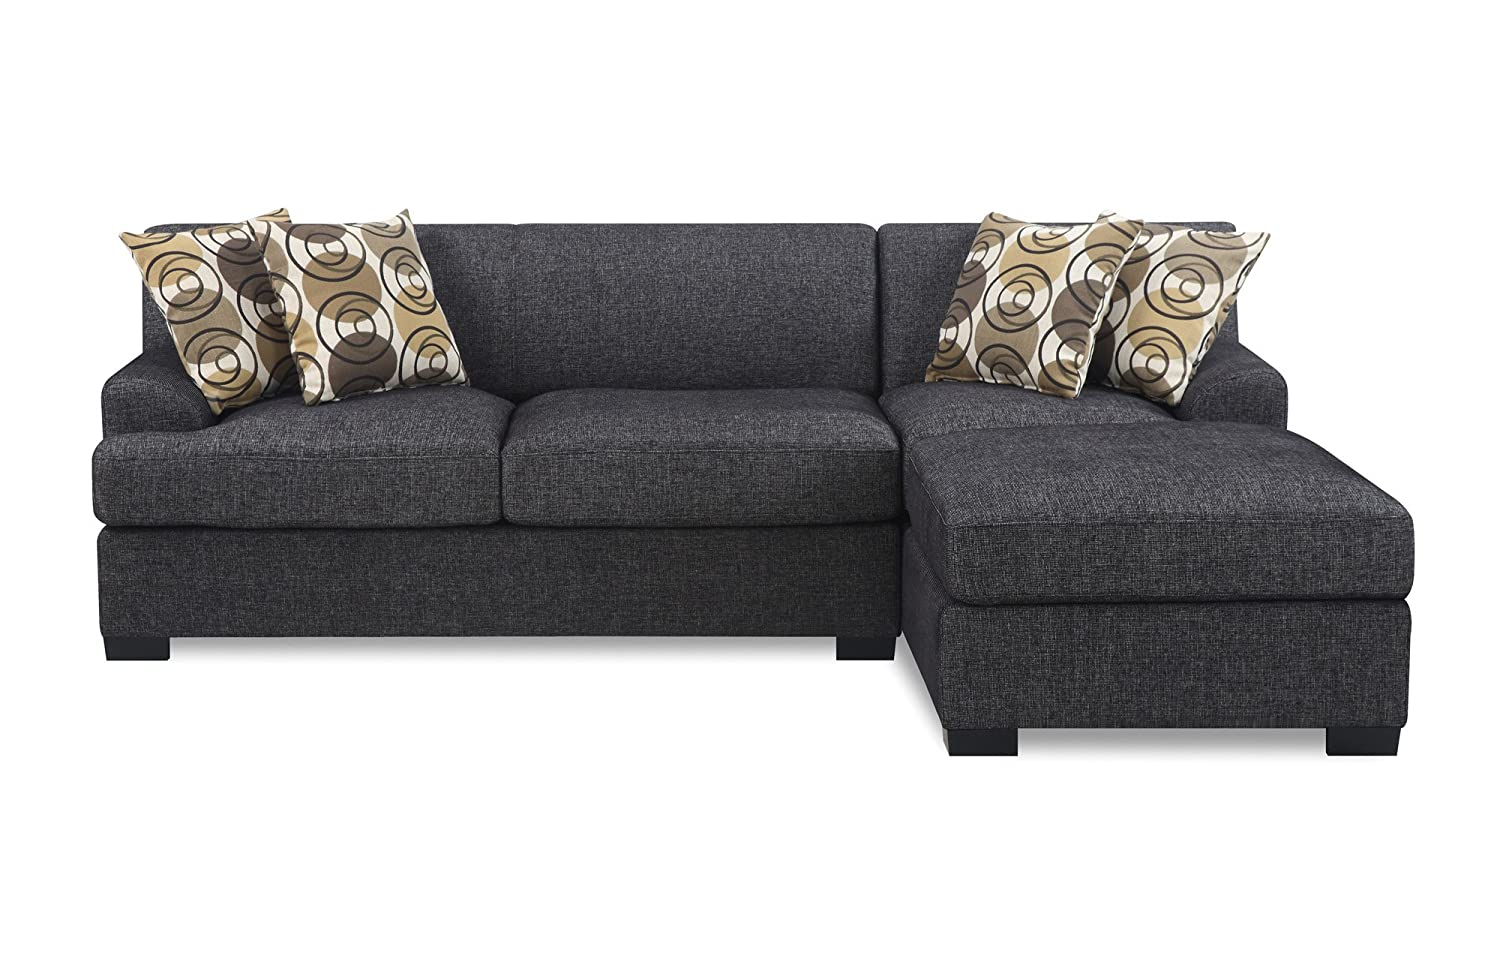 Amazon.com Bobkona Benford 2-Piece Chaise Loveseat Sectional Sofa Collection with Faux Linen Ash Black Kitchen u0026 Dining  sc 1 st  Amazon.com : chaise love seat - Sectionals, Sofas & Couches